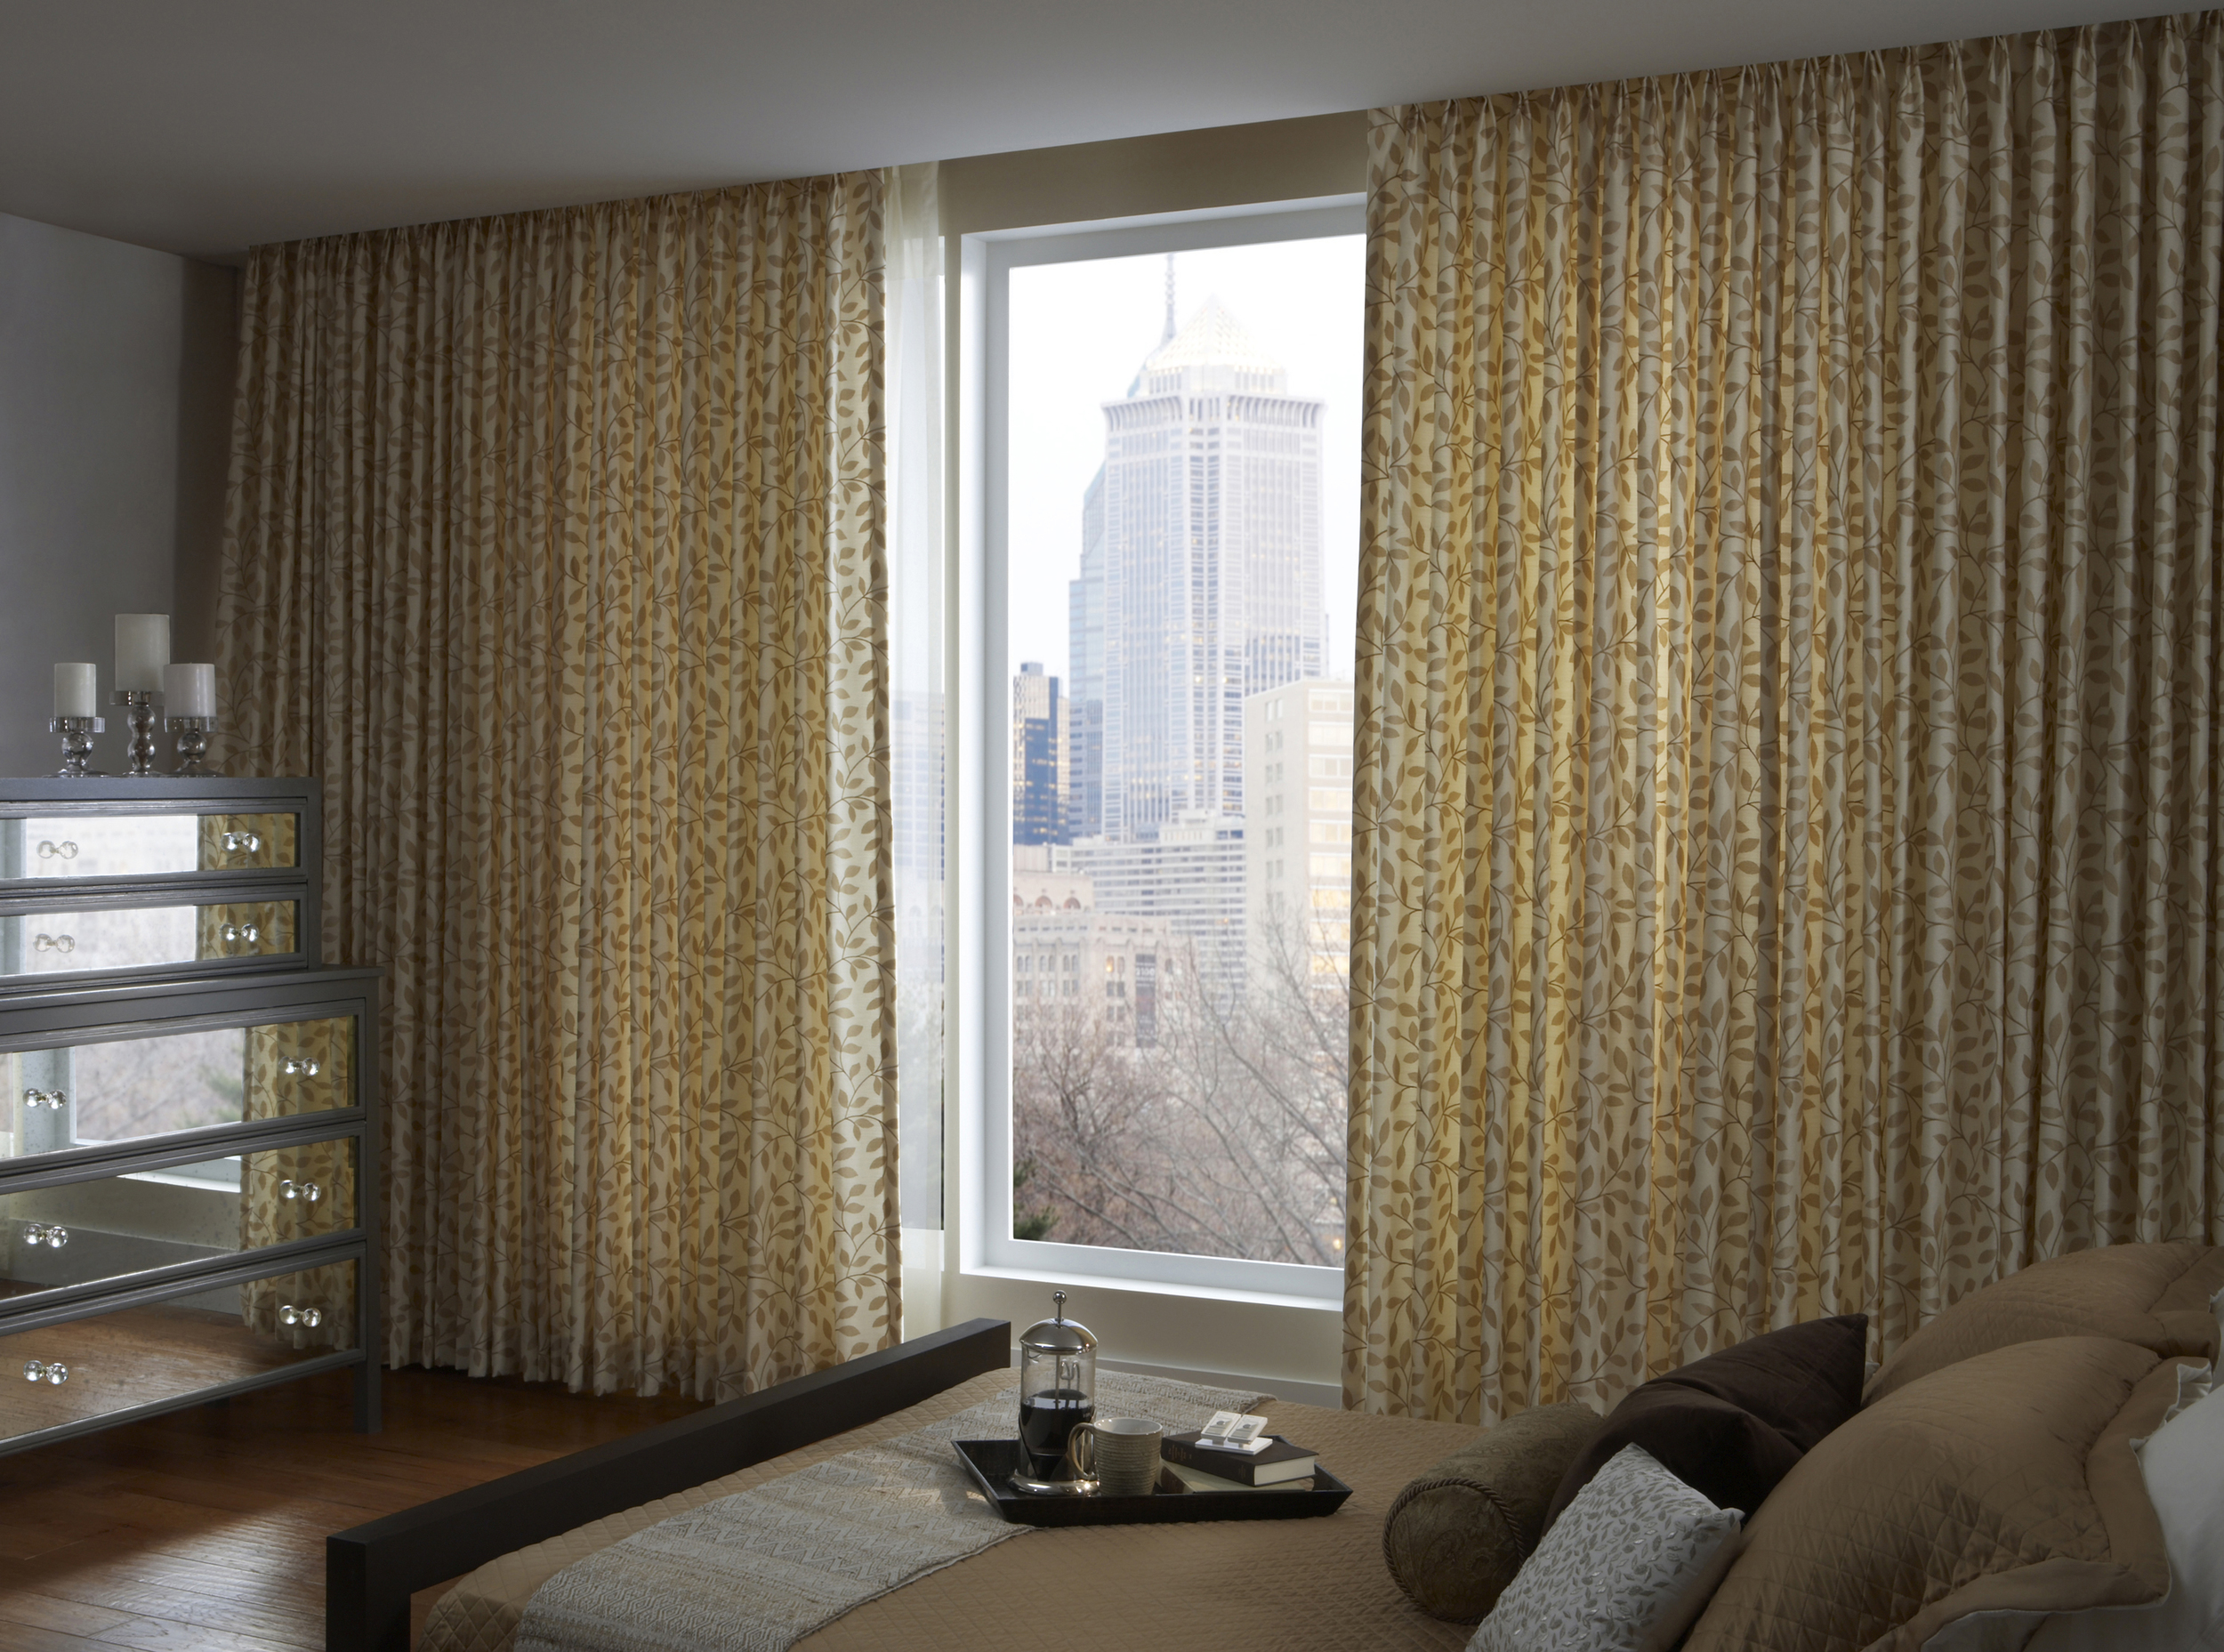 window to ceiling nyc windows floor blinds sunscreen roller pin